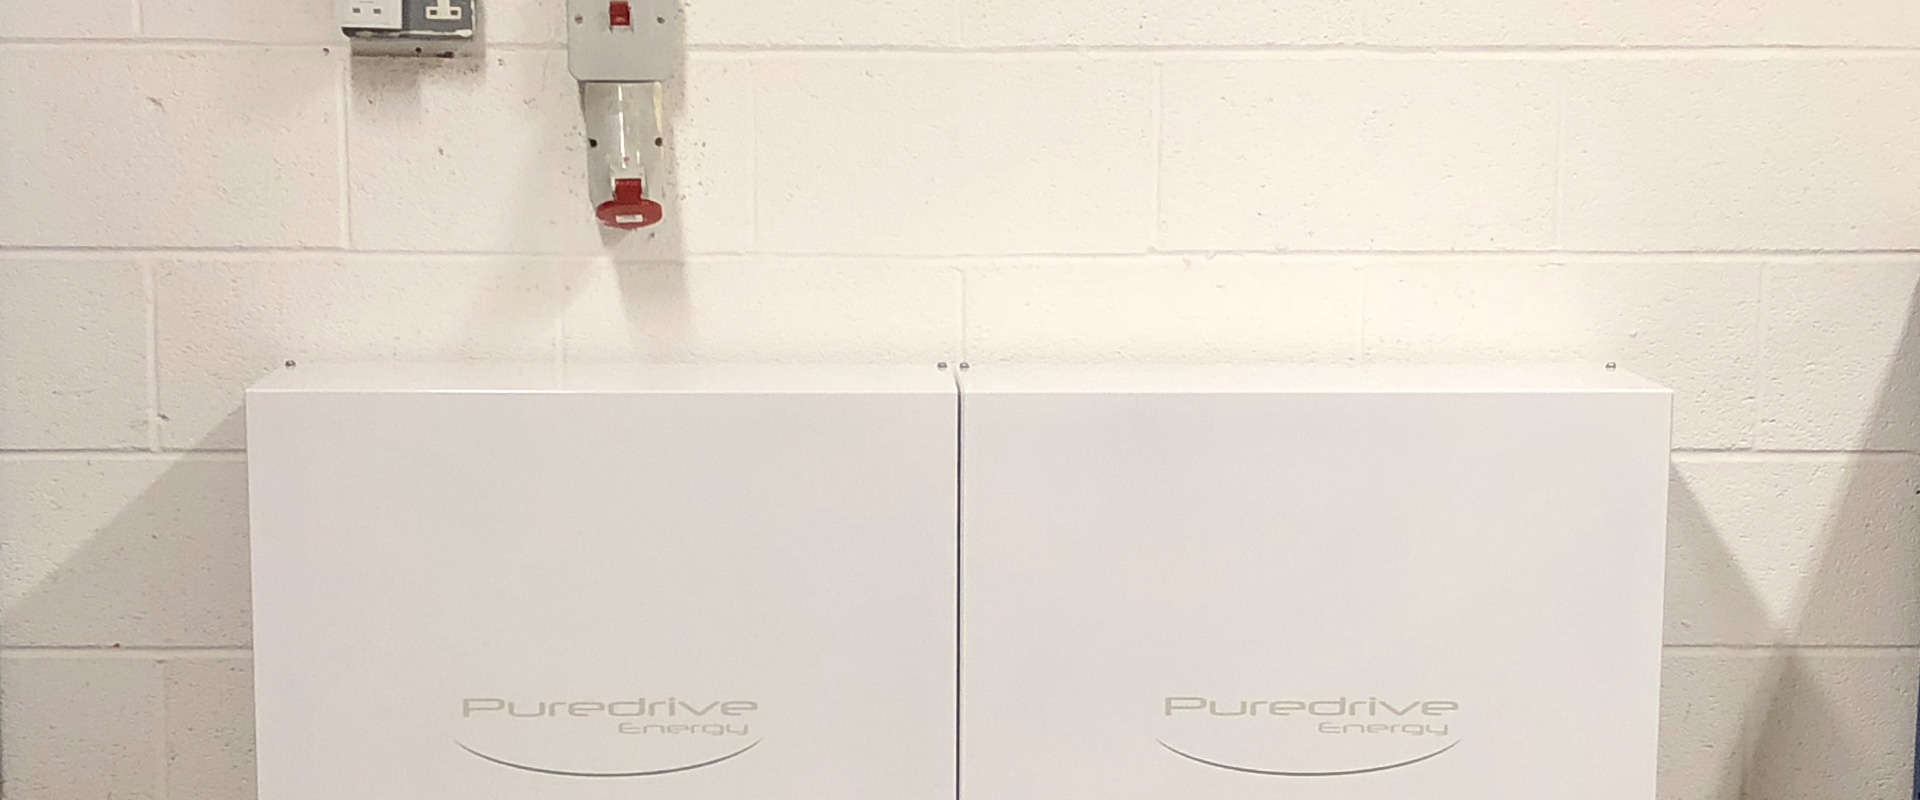 Puredrive Energy Commercial Battery System Image